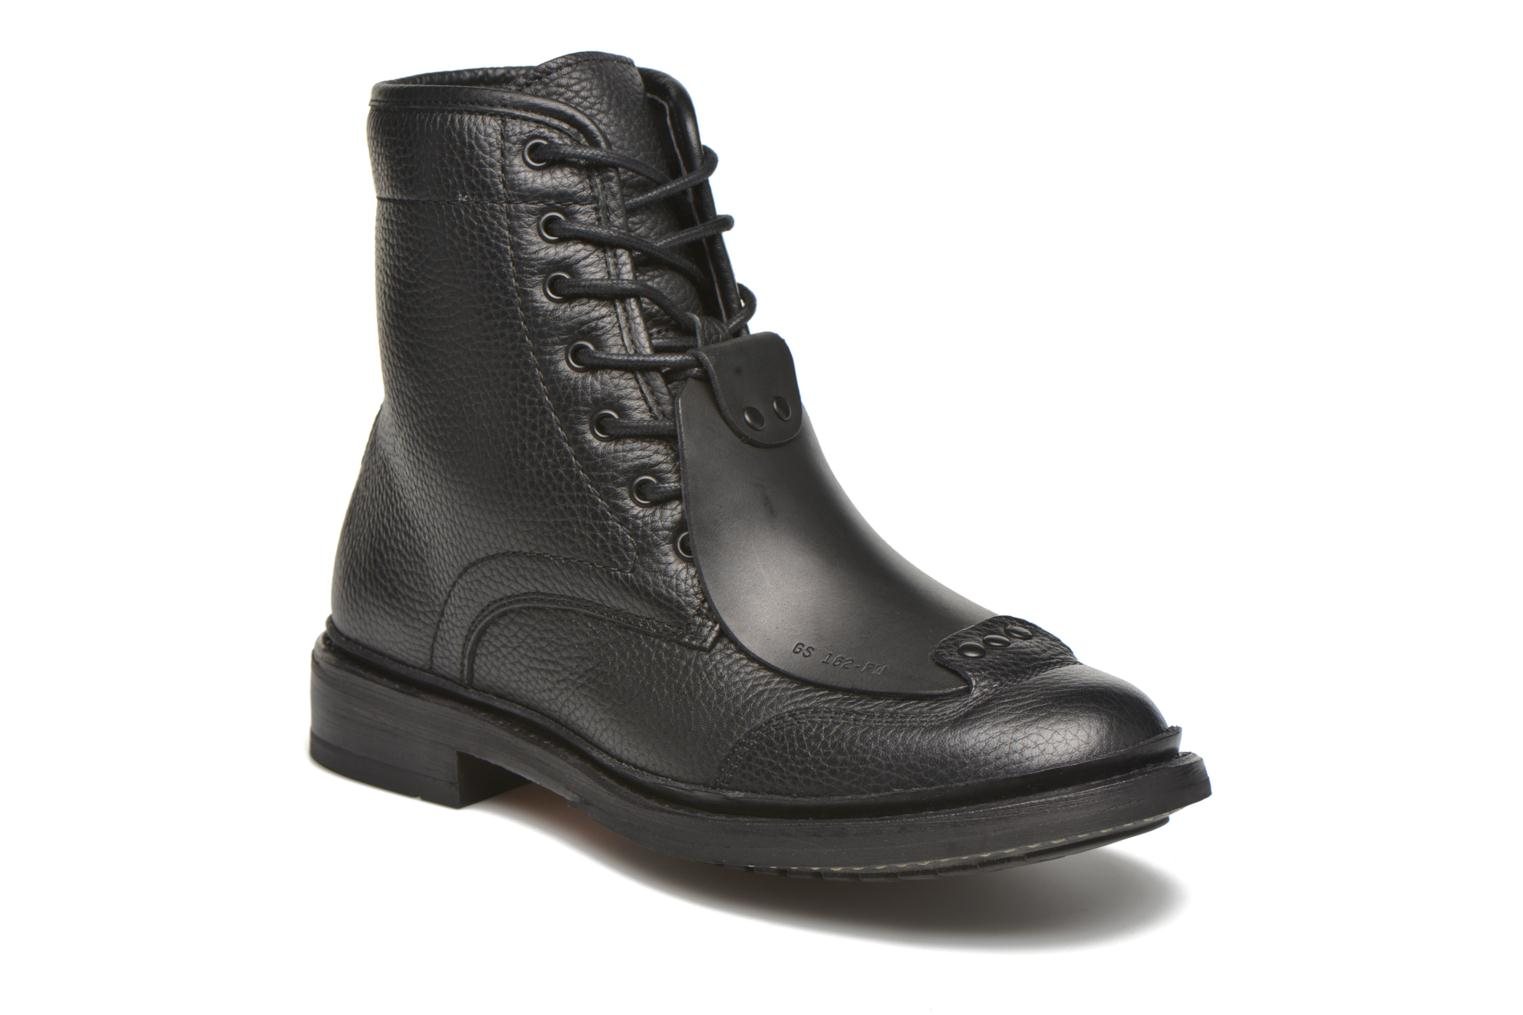 Boots en enkellaarsjes Guard boot W by G-Star